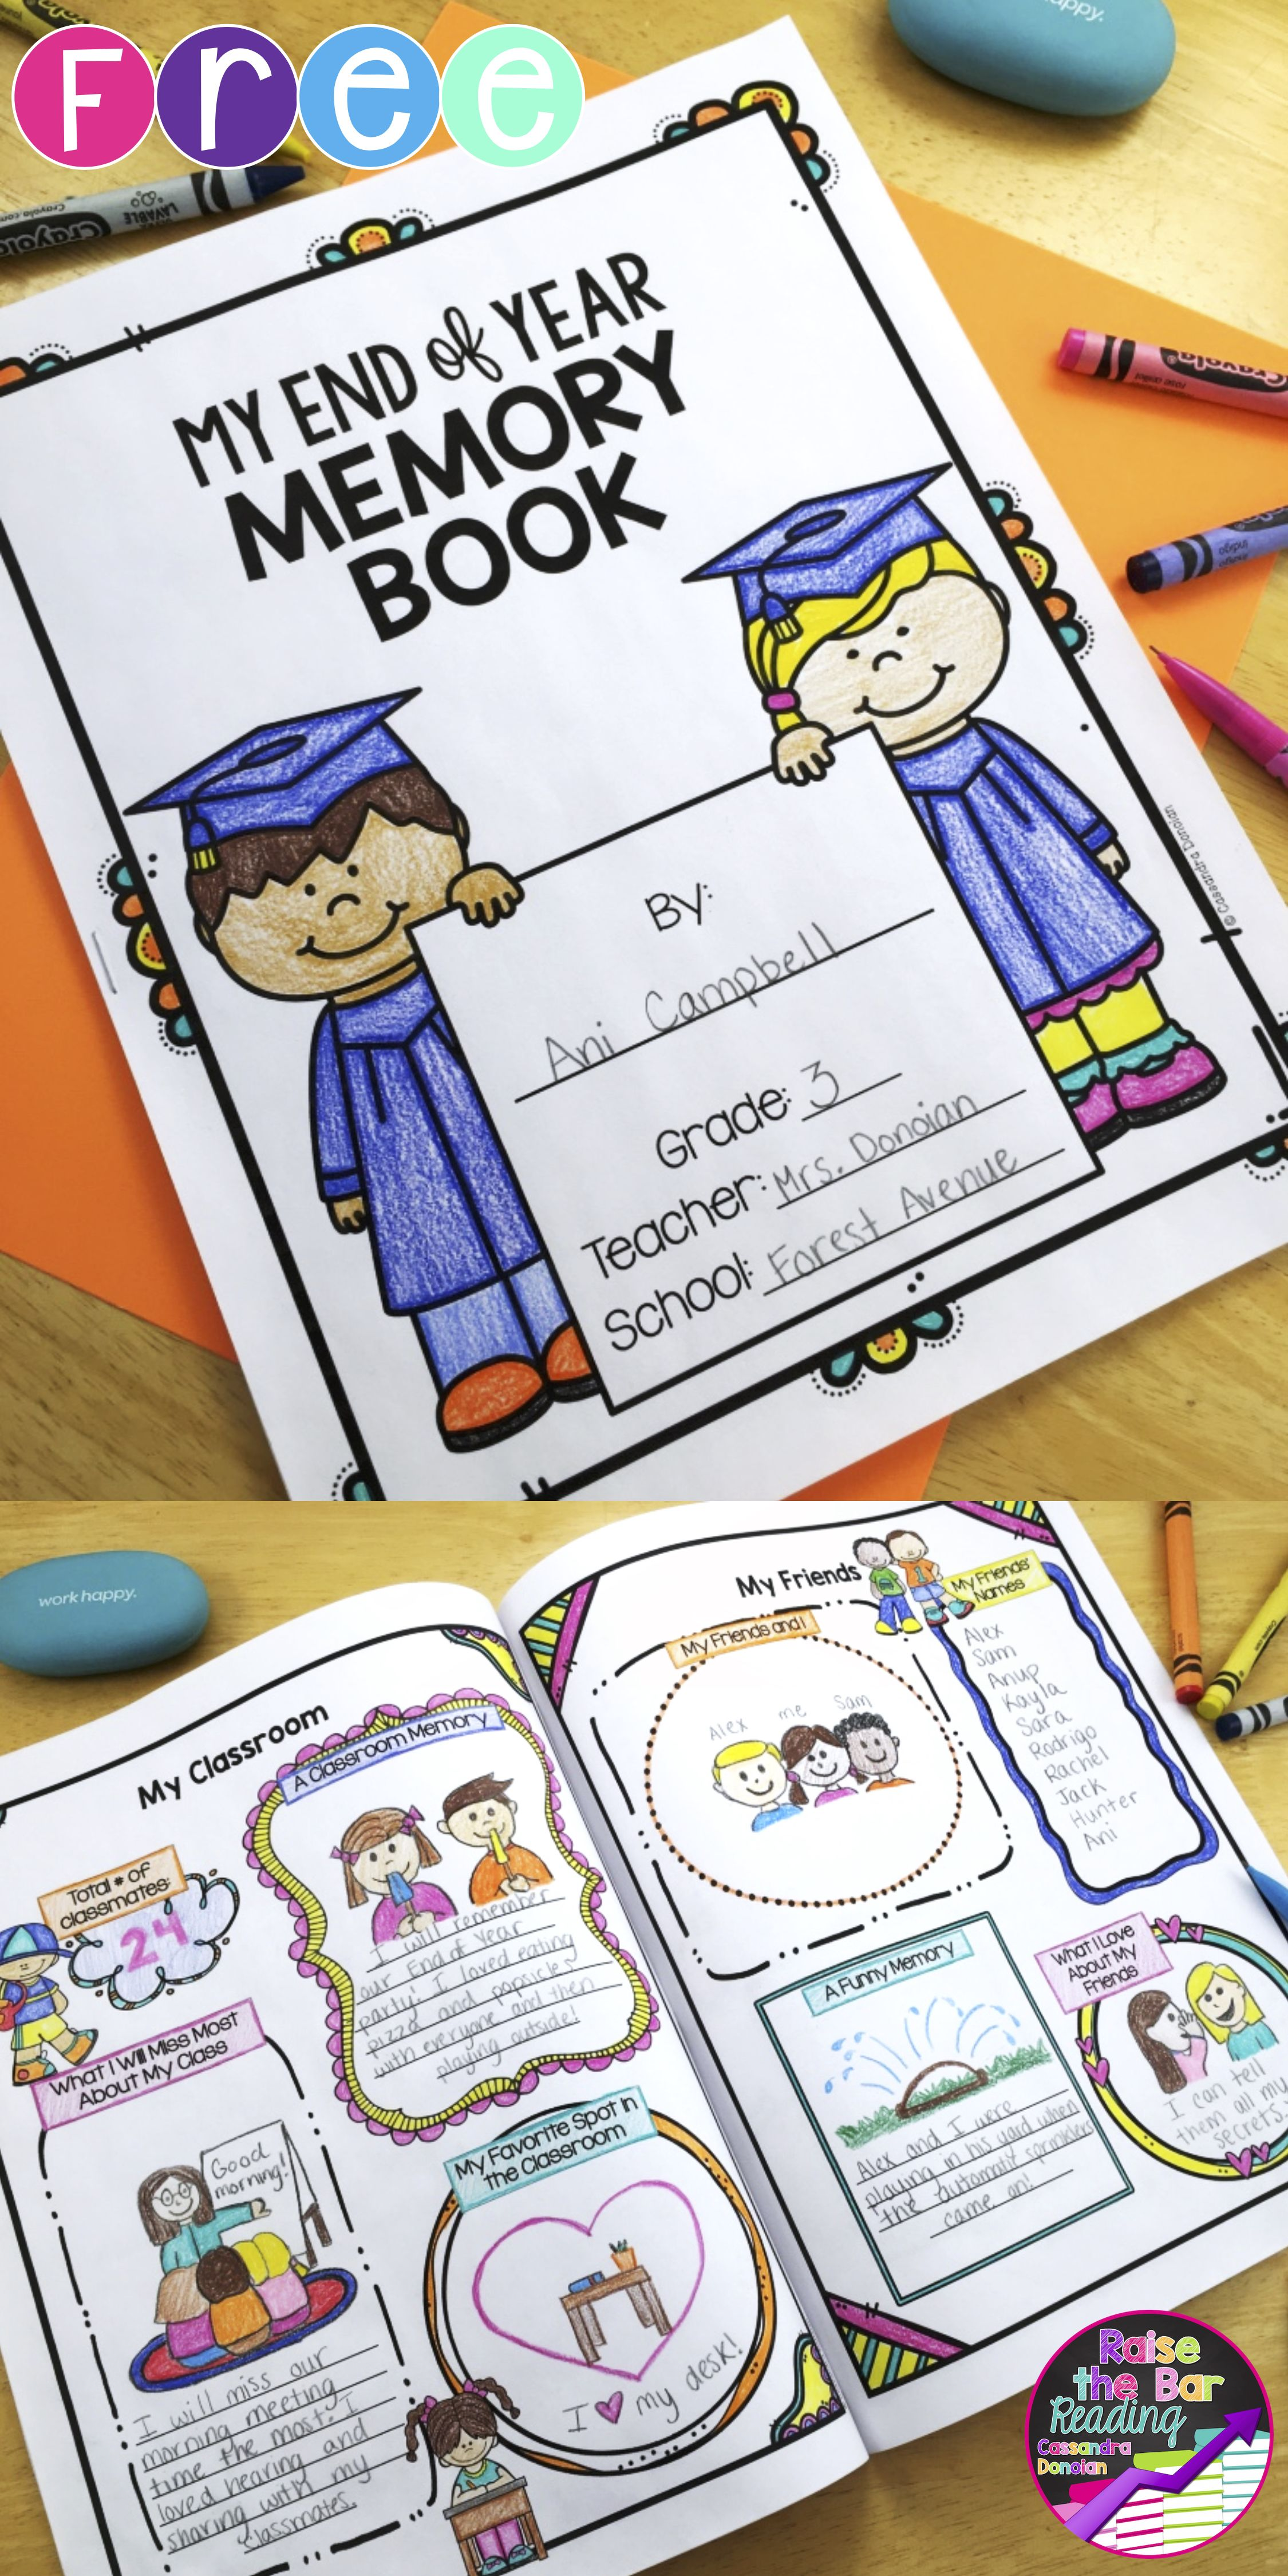 Free coloring pages end of school - End Of Year Memory Book With 3 Student Writing Templates And A Free Writing Page Your Students Will Love This End Of Year Activity